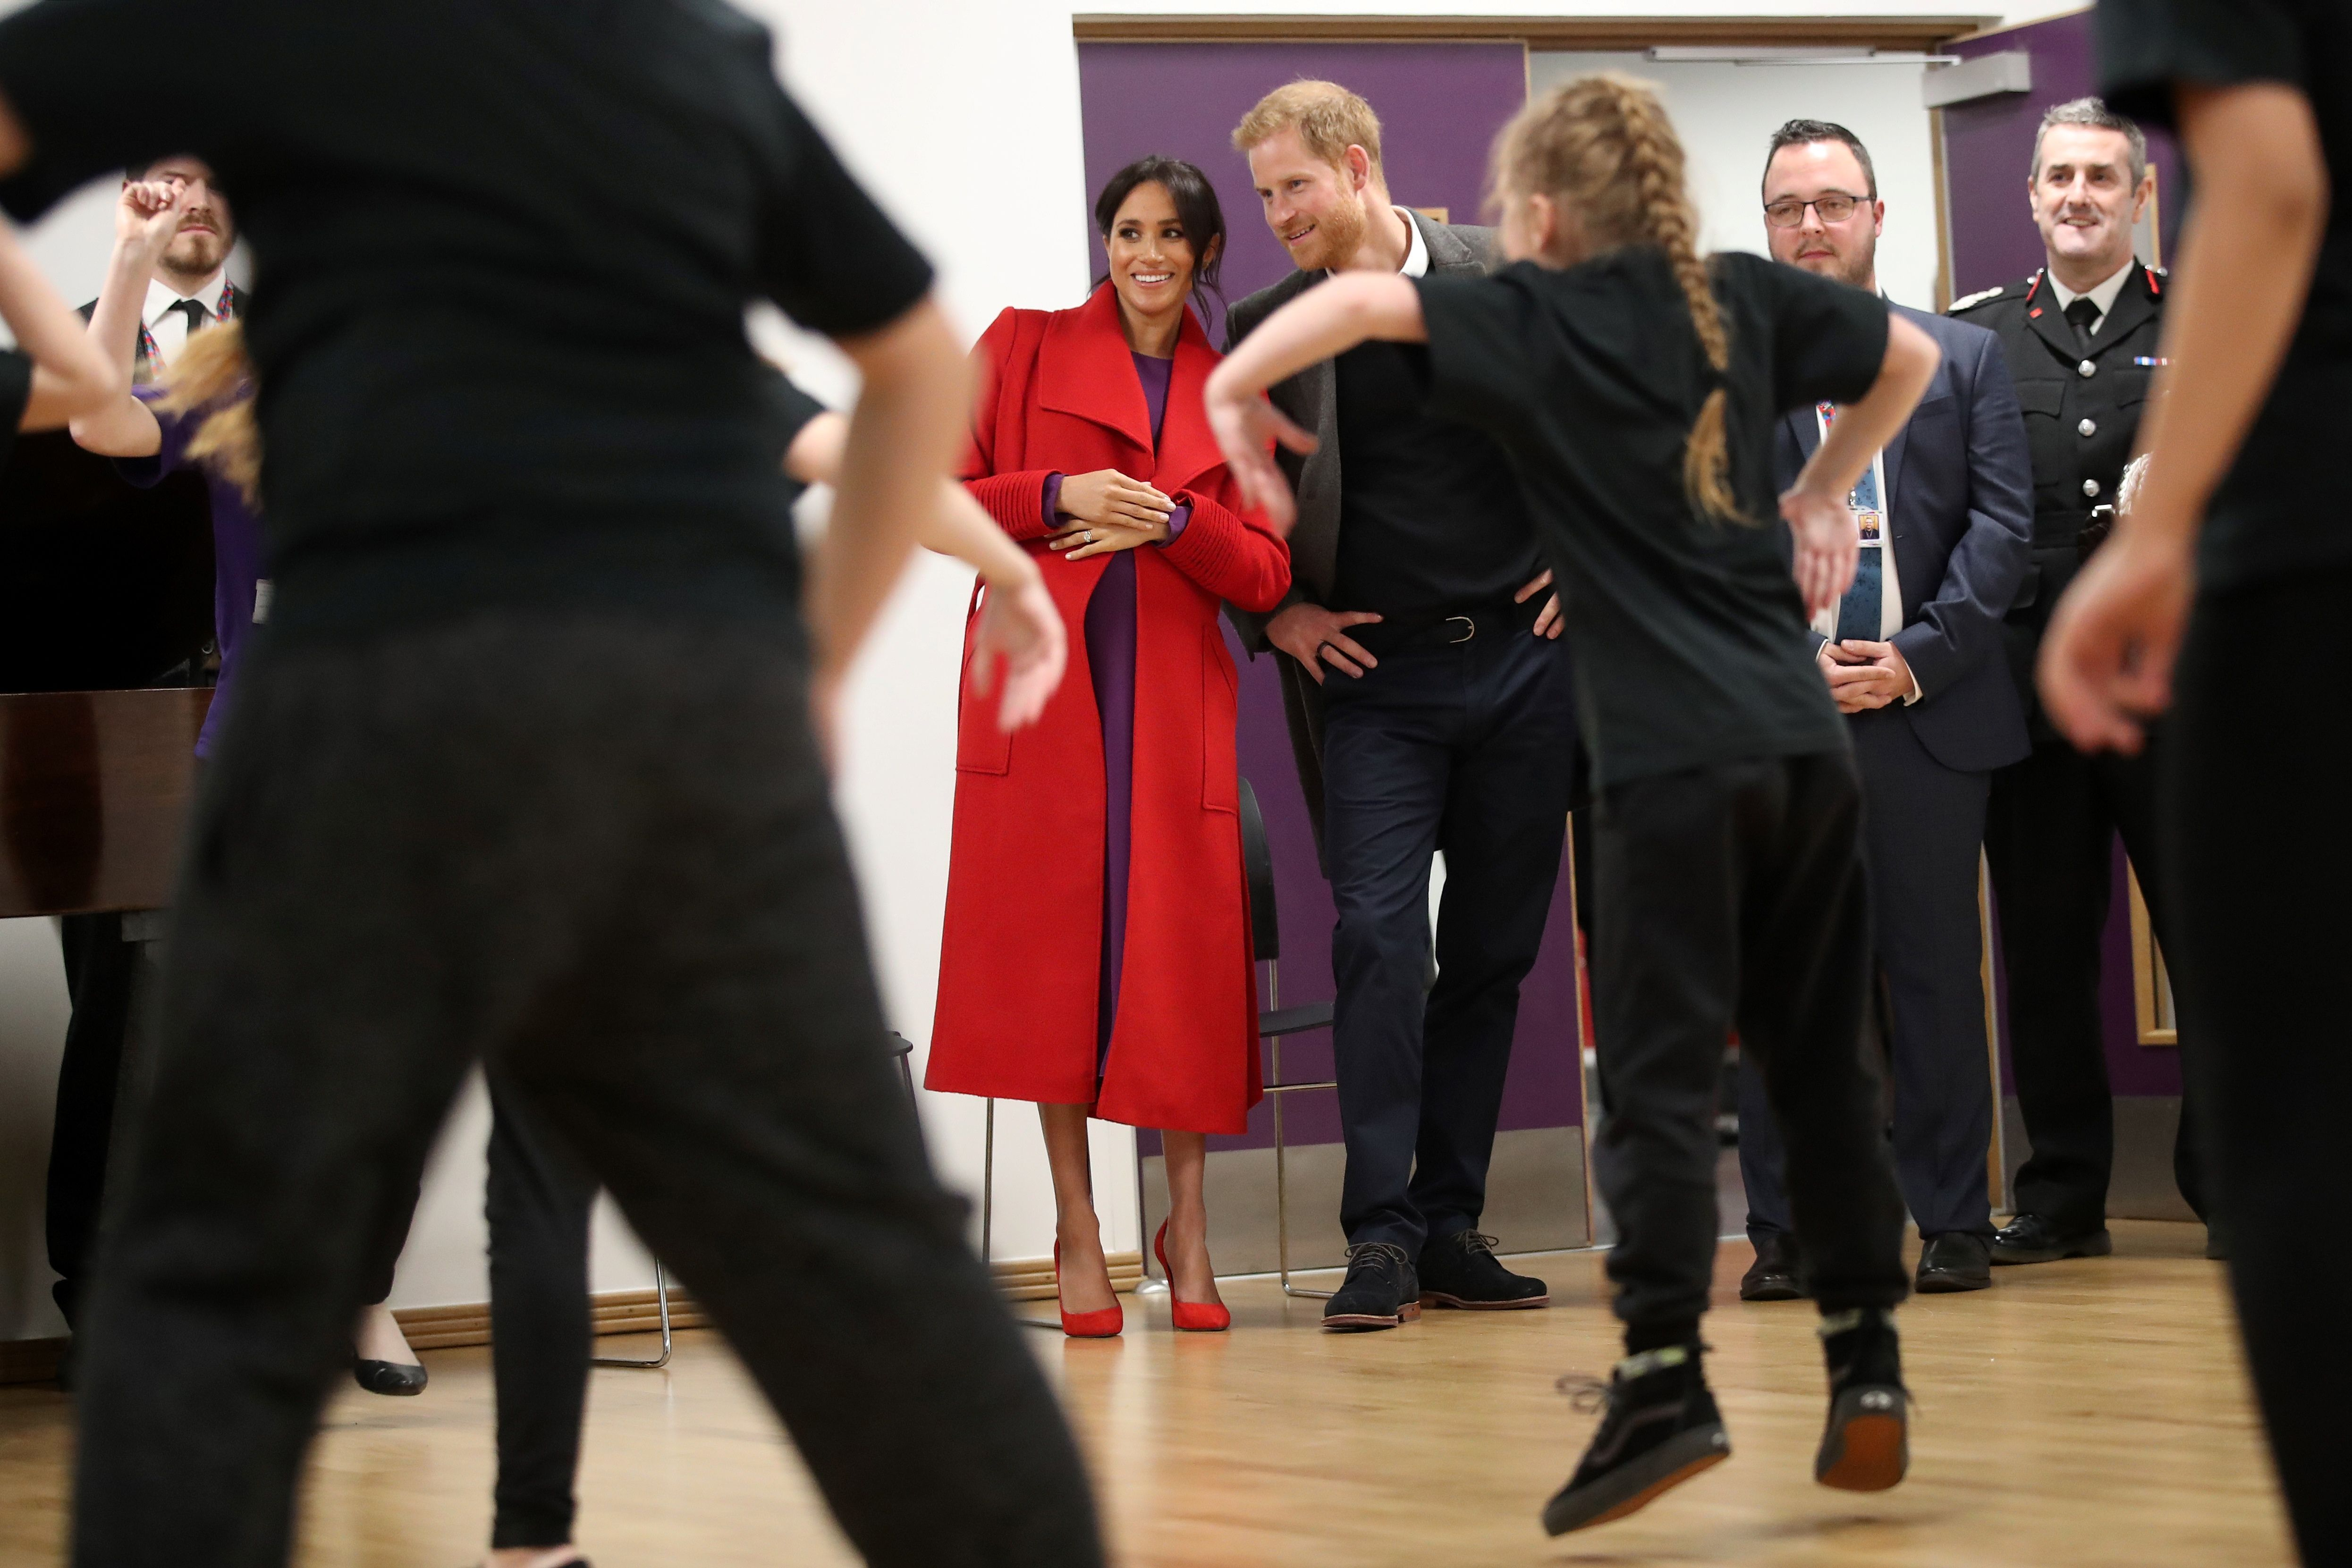 Meghan and Harry look on during a dance performance at The Hive.